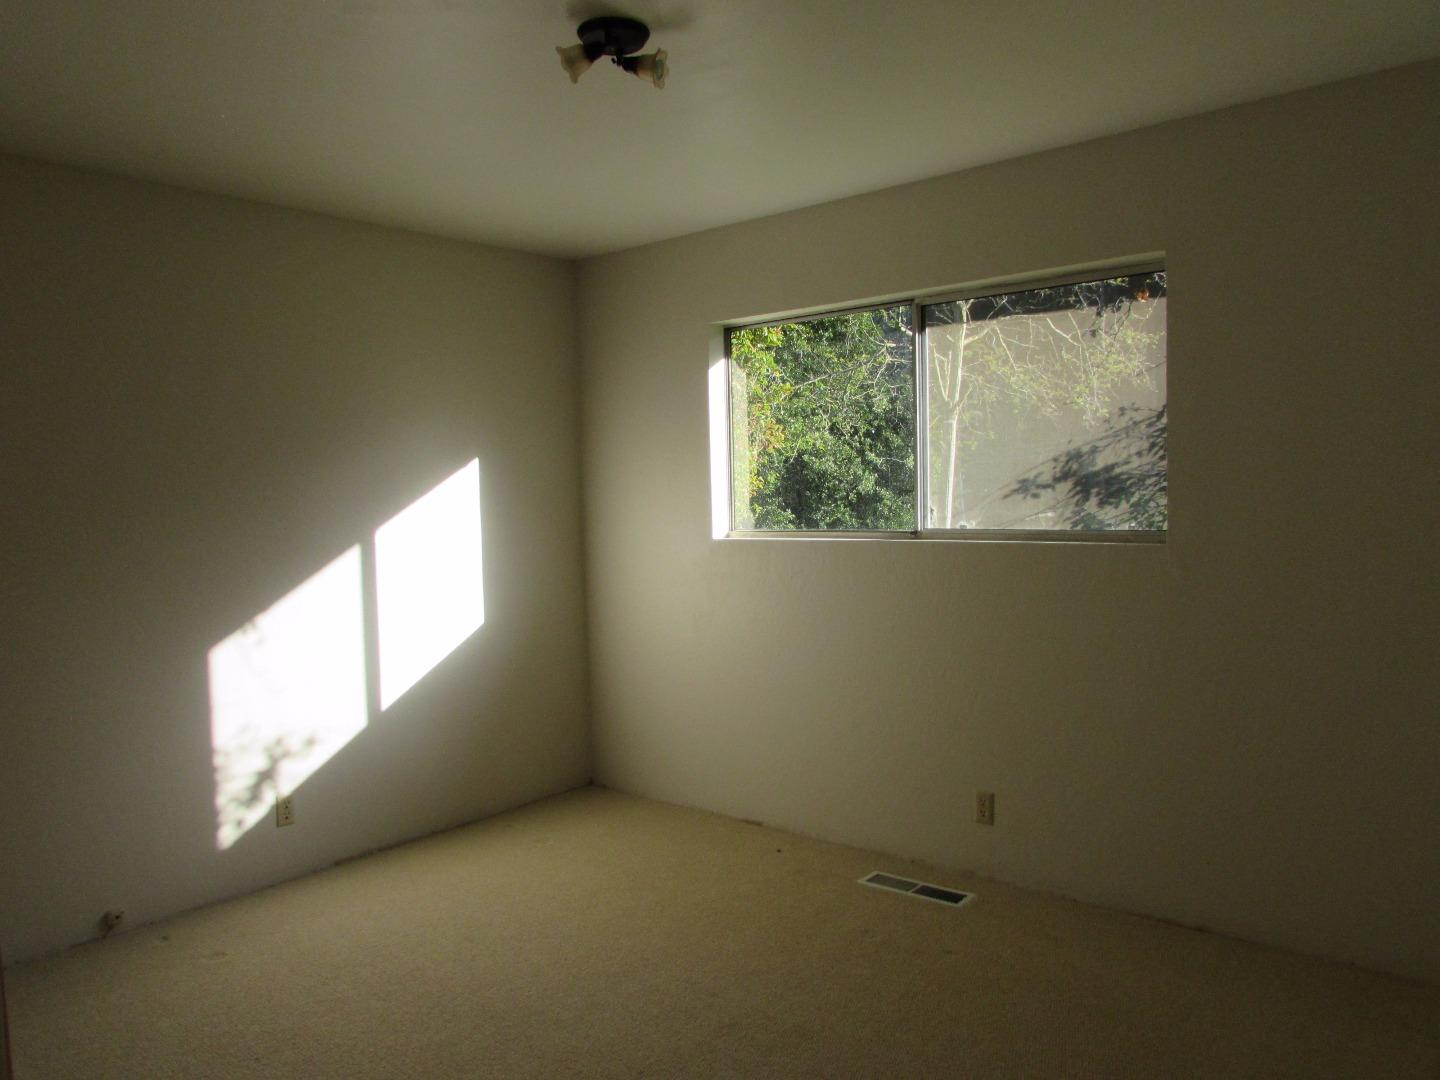 Additional photo for property listing at 6915 Lakeview Drive  Salinas, California 93907 Estados Unidos